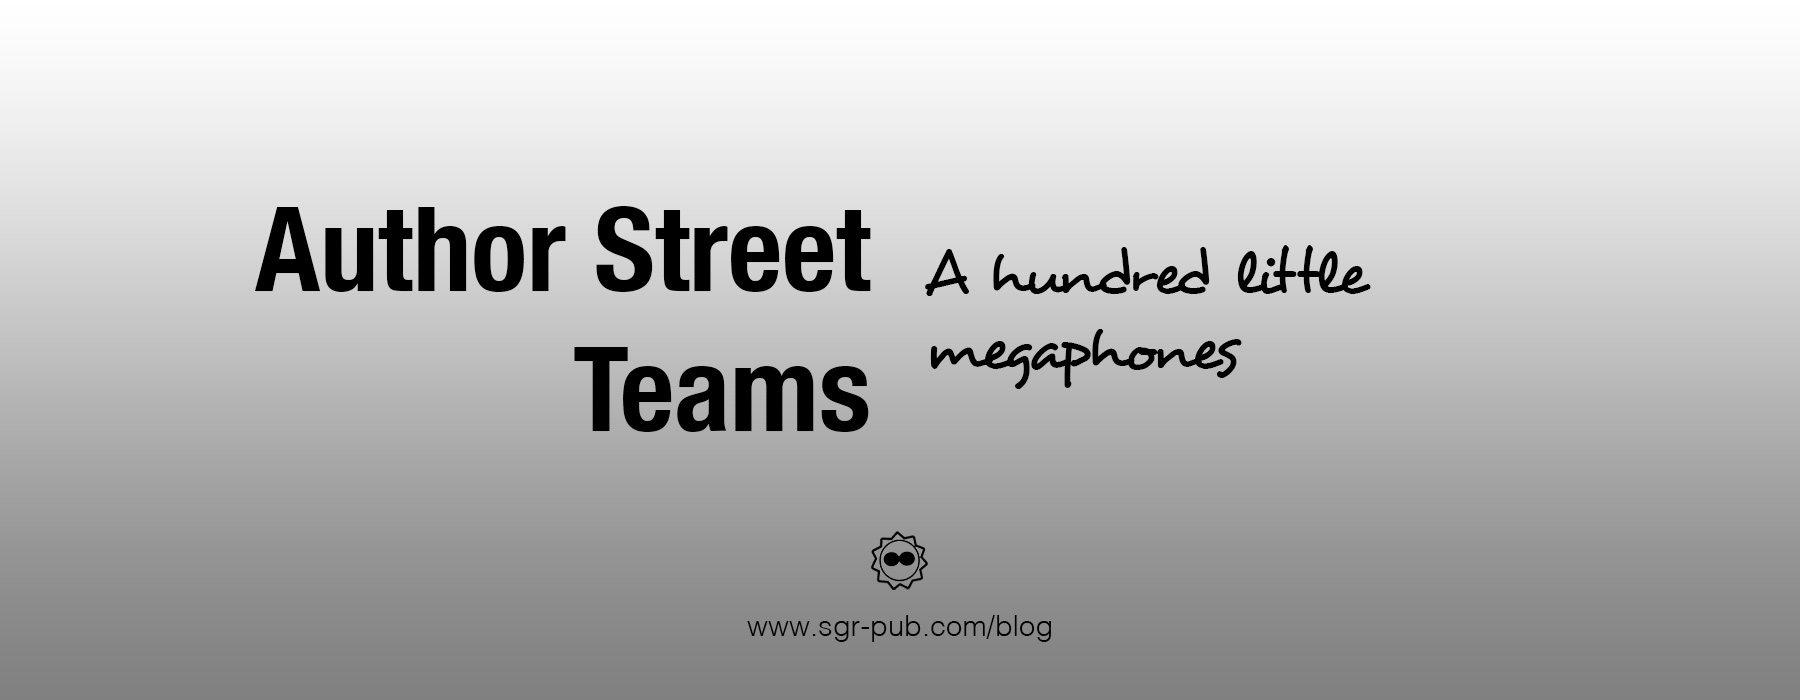 Author street teams, a hundred megaphones